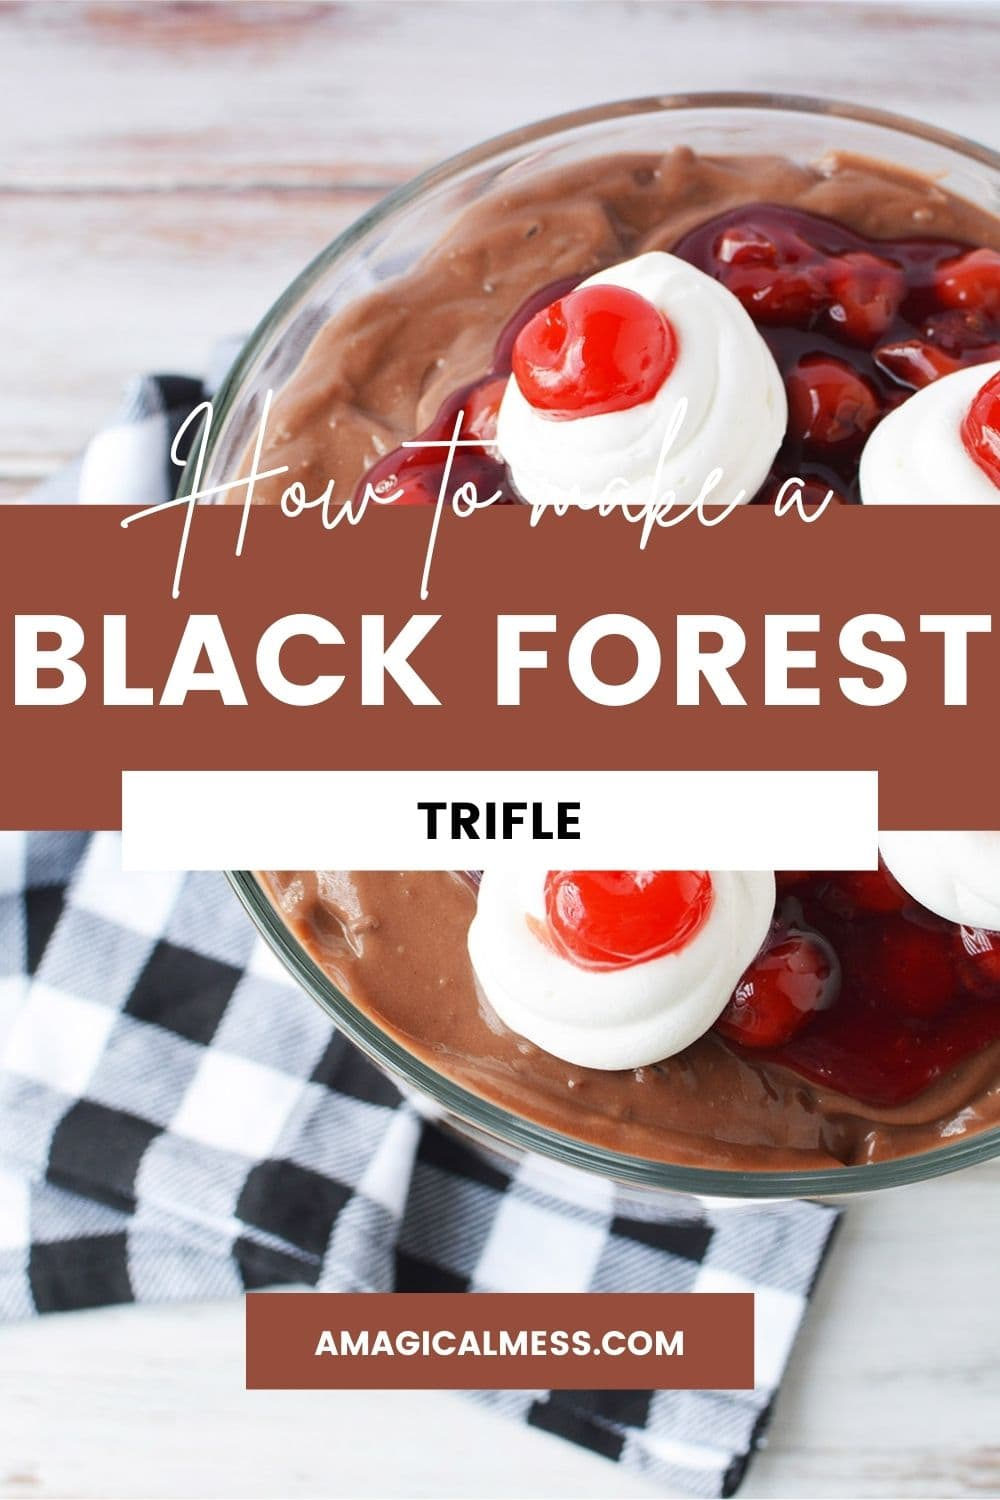 Top of a black forest trifle topped with cherries.